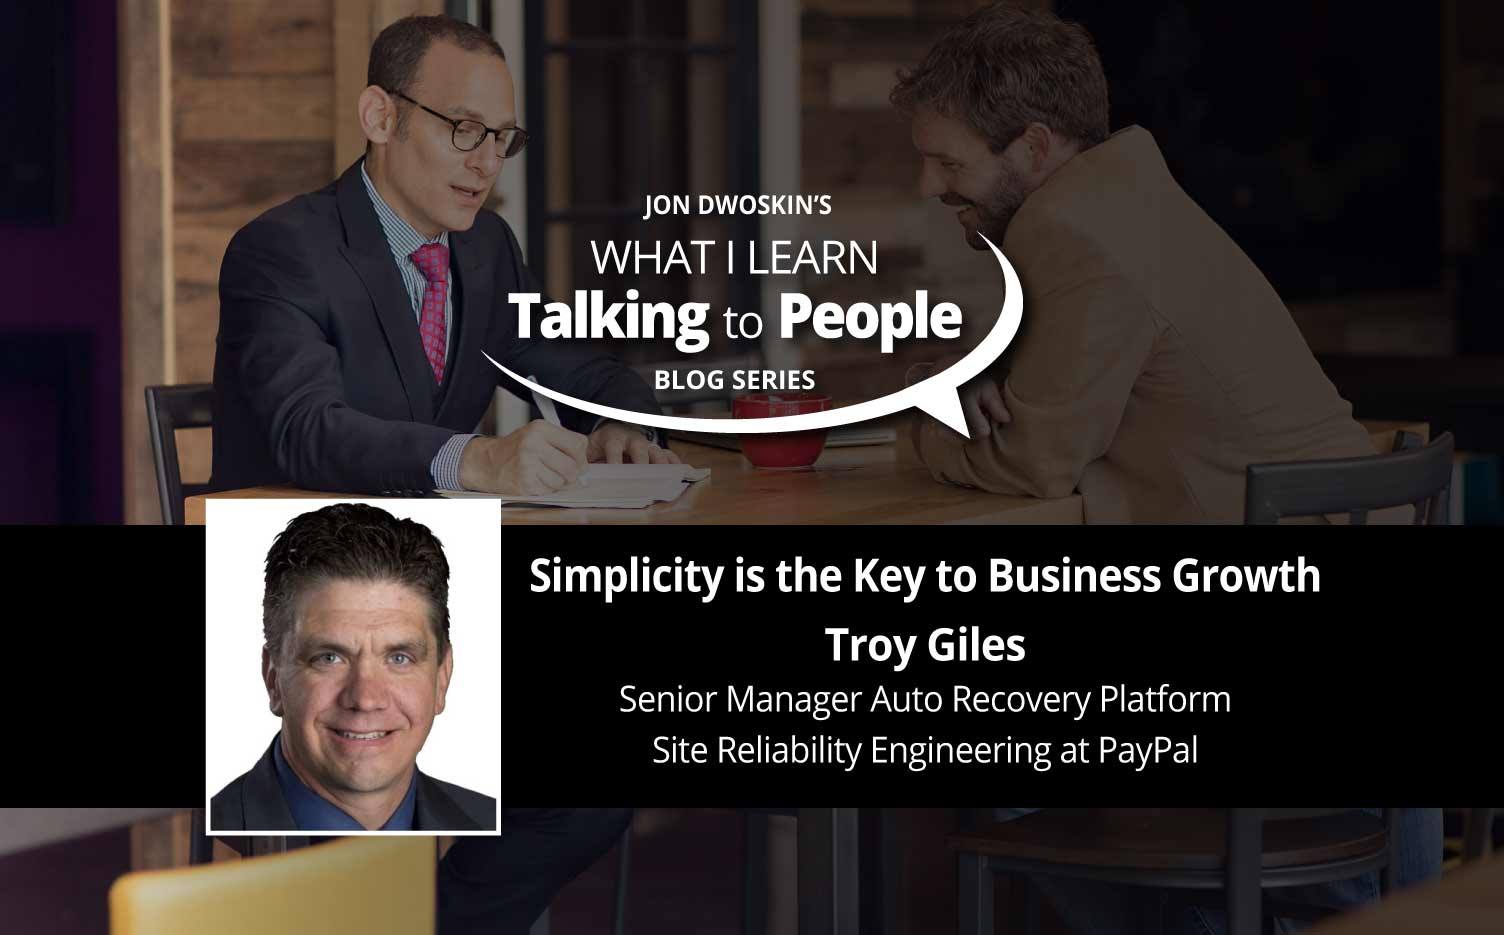 Jon Dwoskin's What I Learn Talking to People Blog: Simplicity is the Key to Business Growth